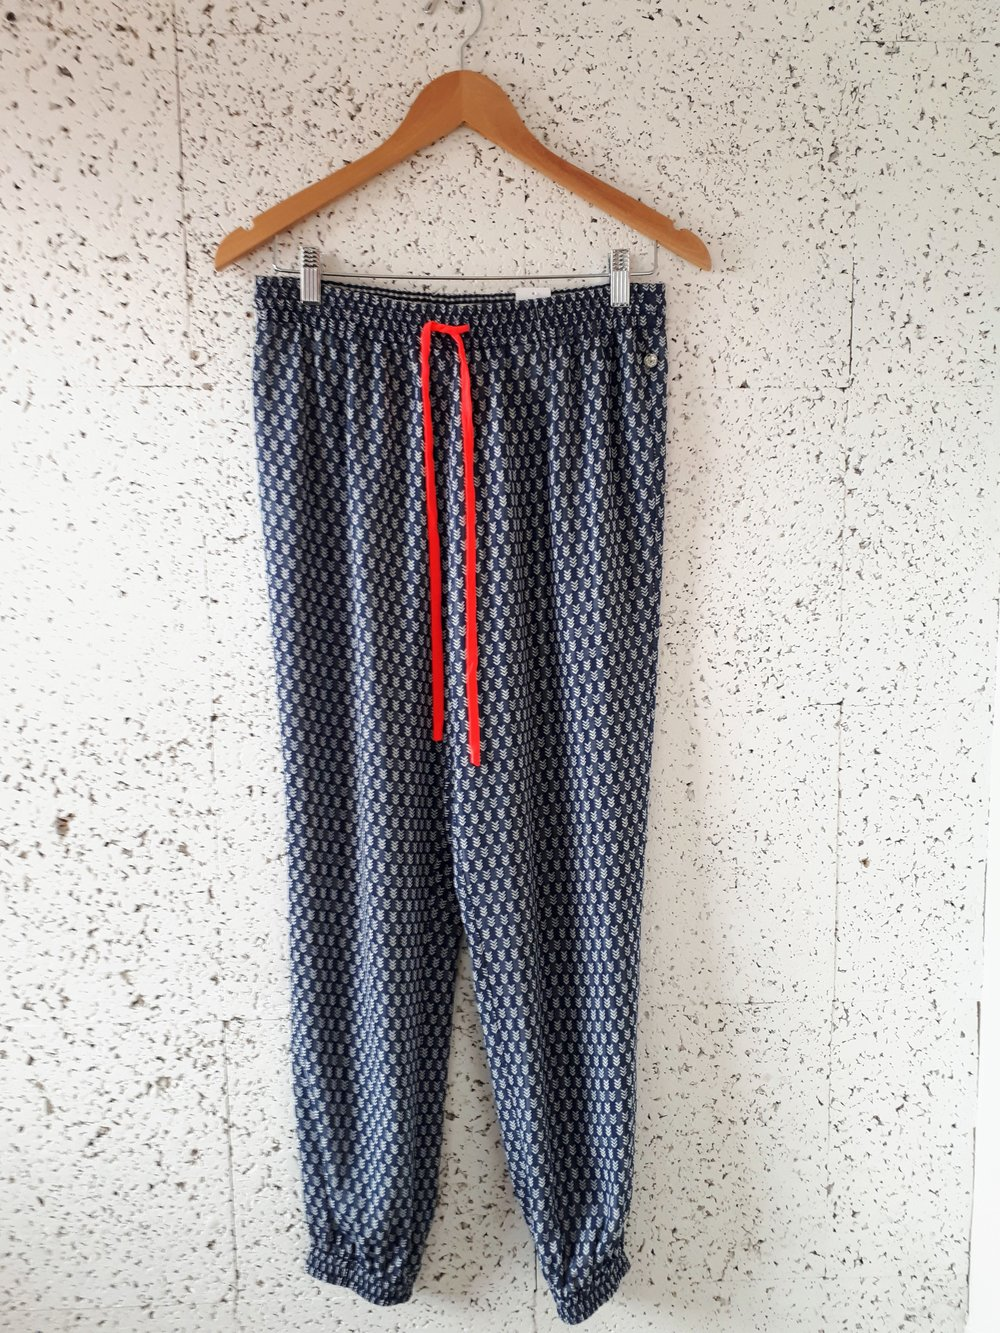 Maison Scotch pants; Size M, $32